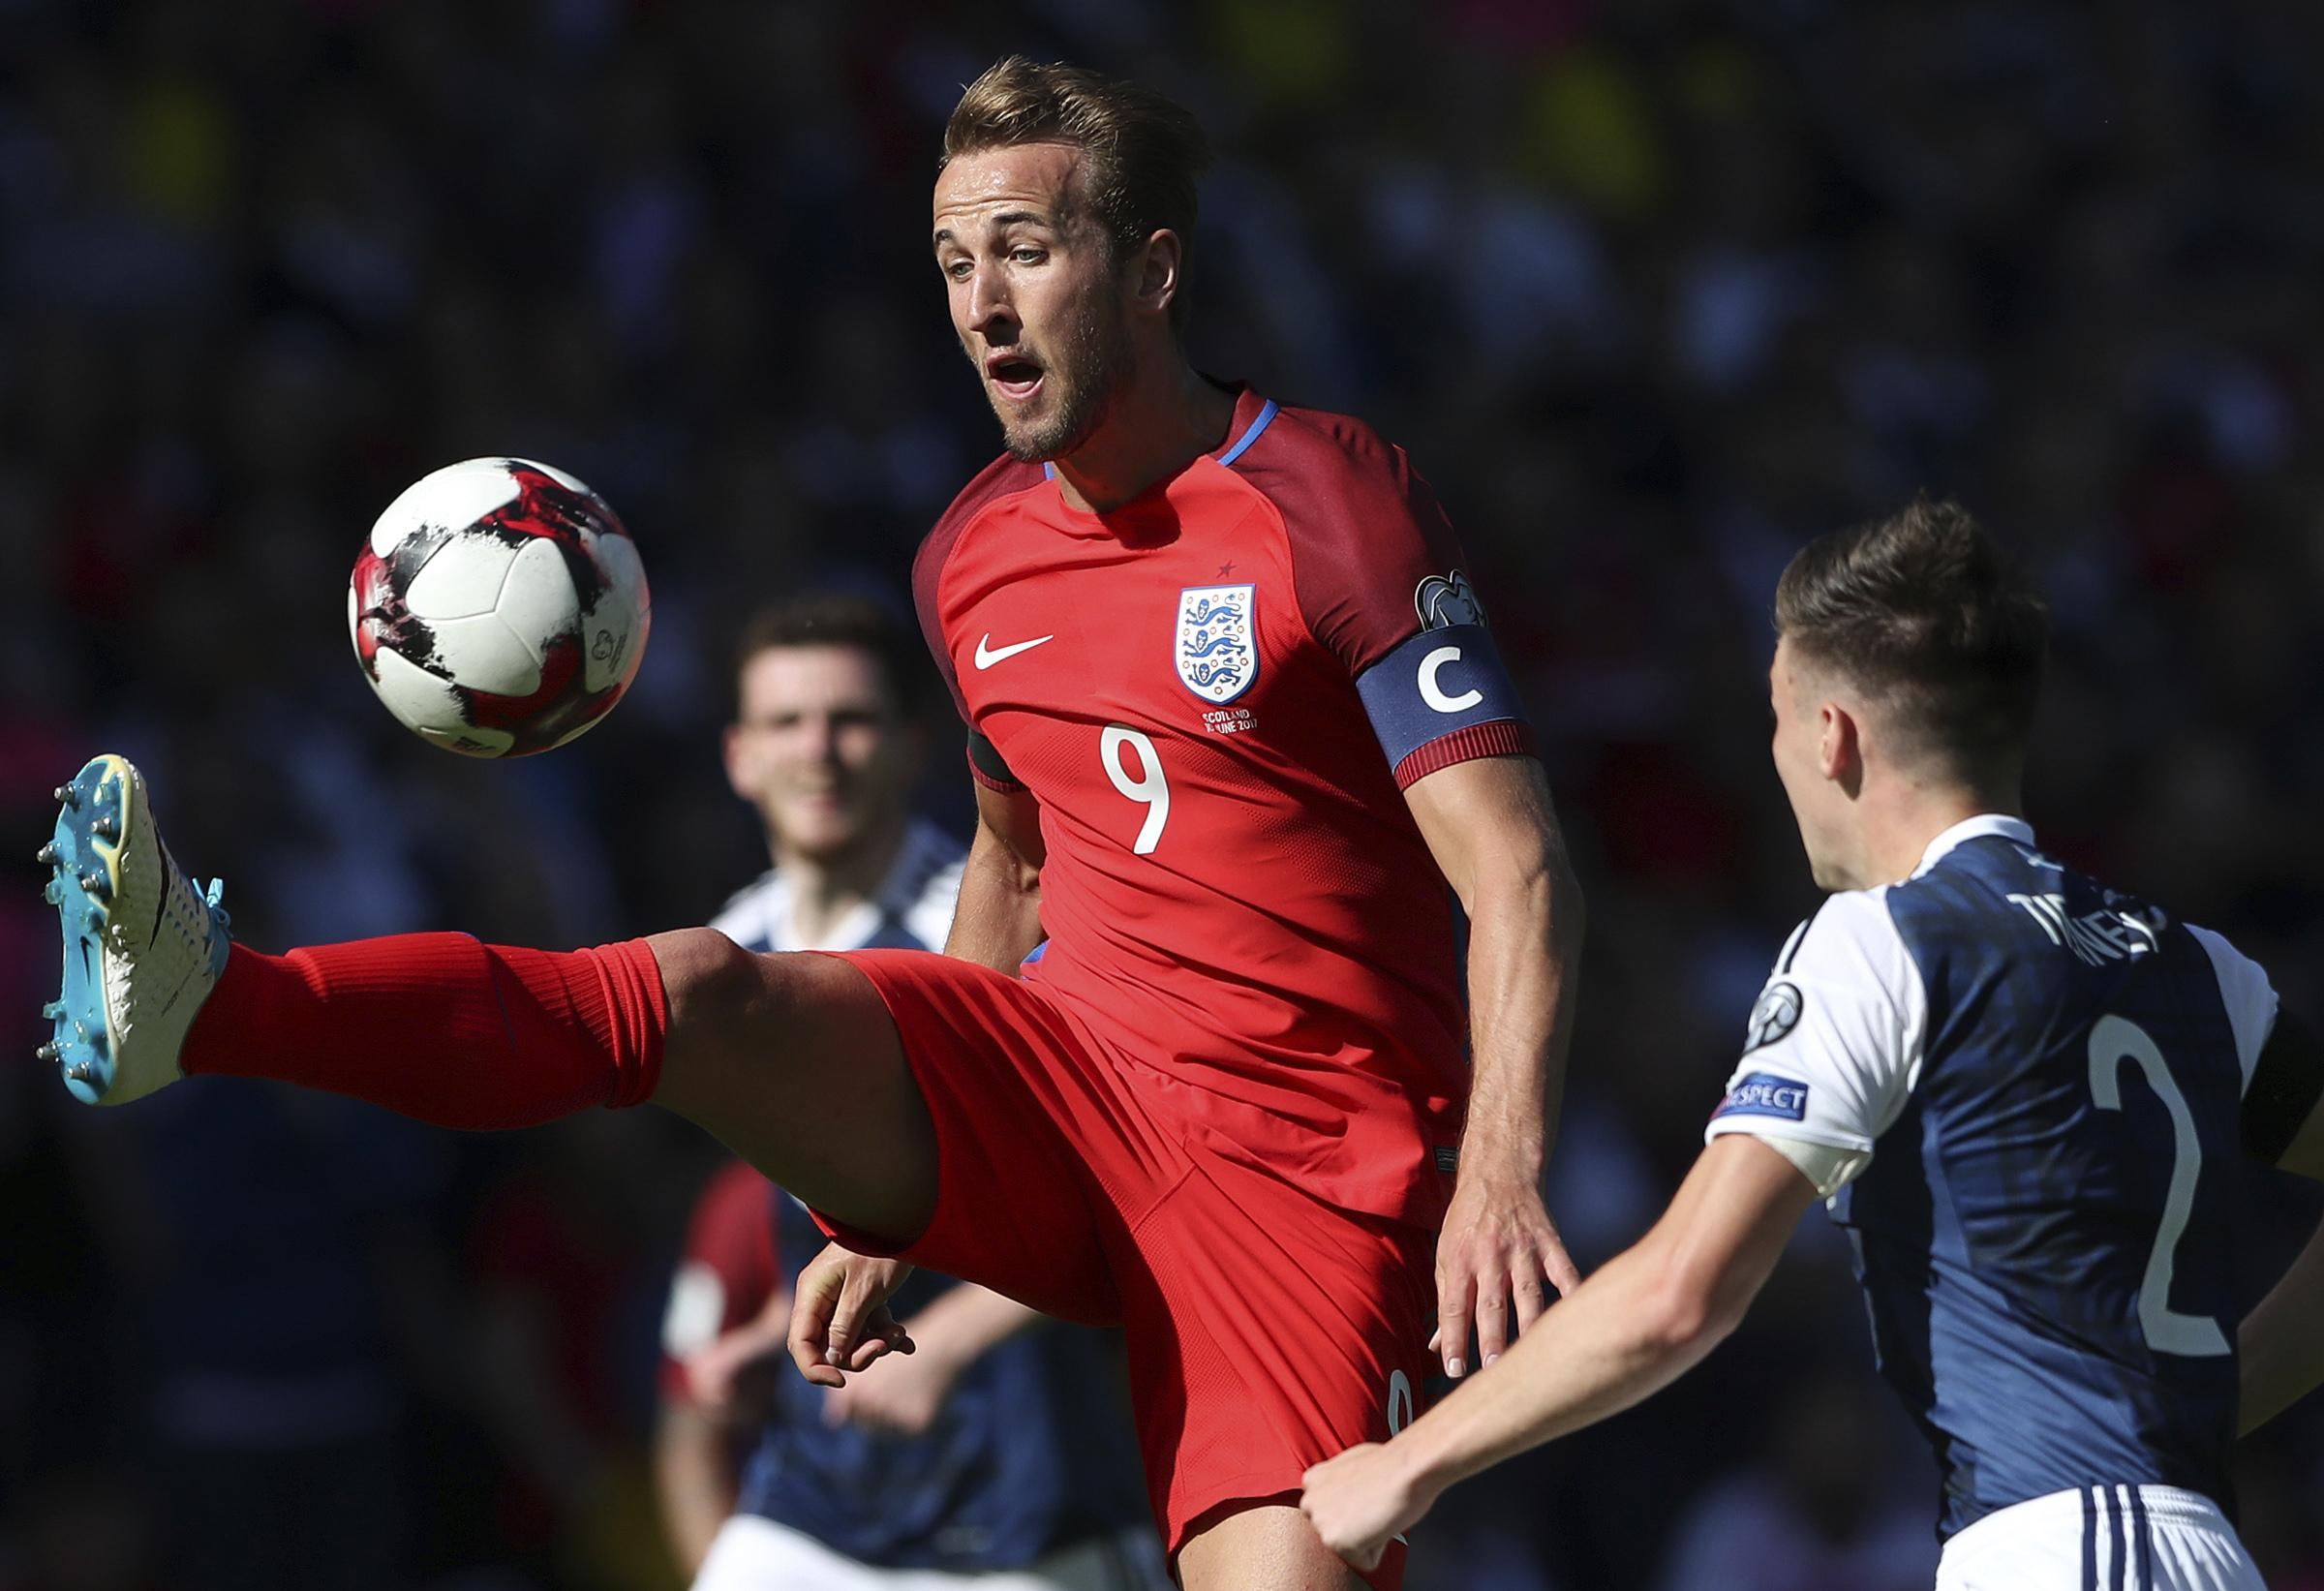 England S Harry Kane Left View For The Ball Next To Scotland Charlie Tierney During